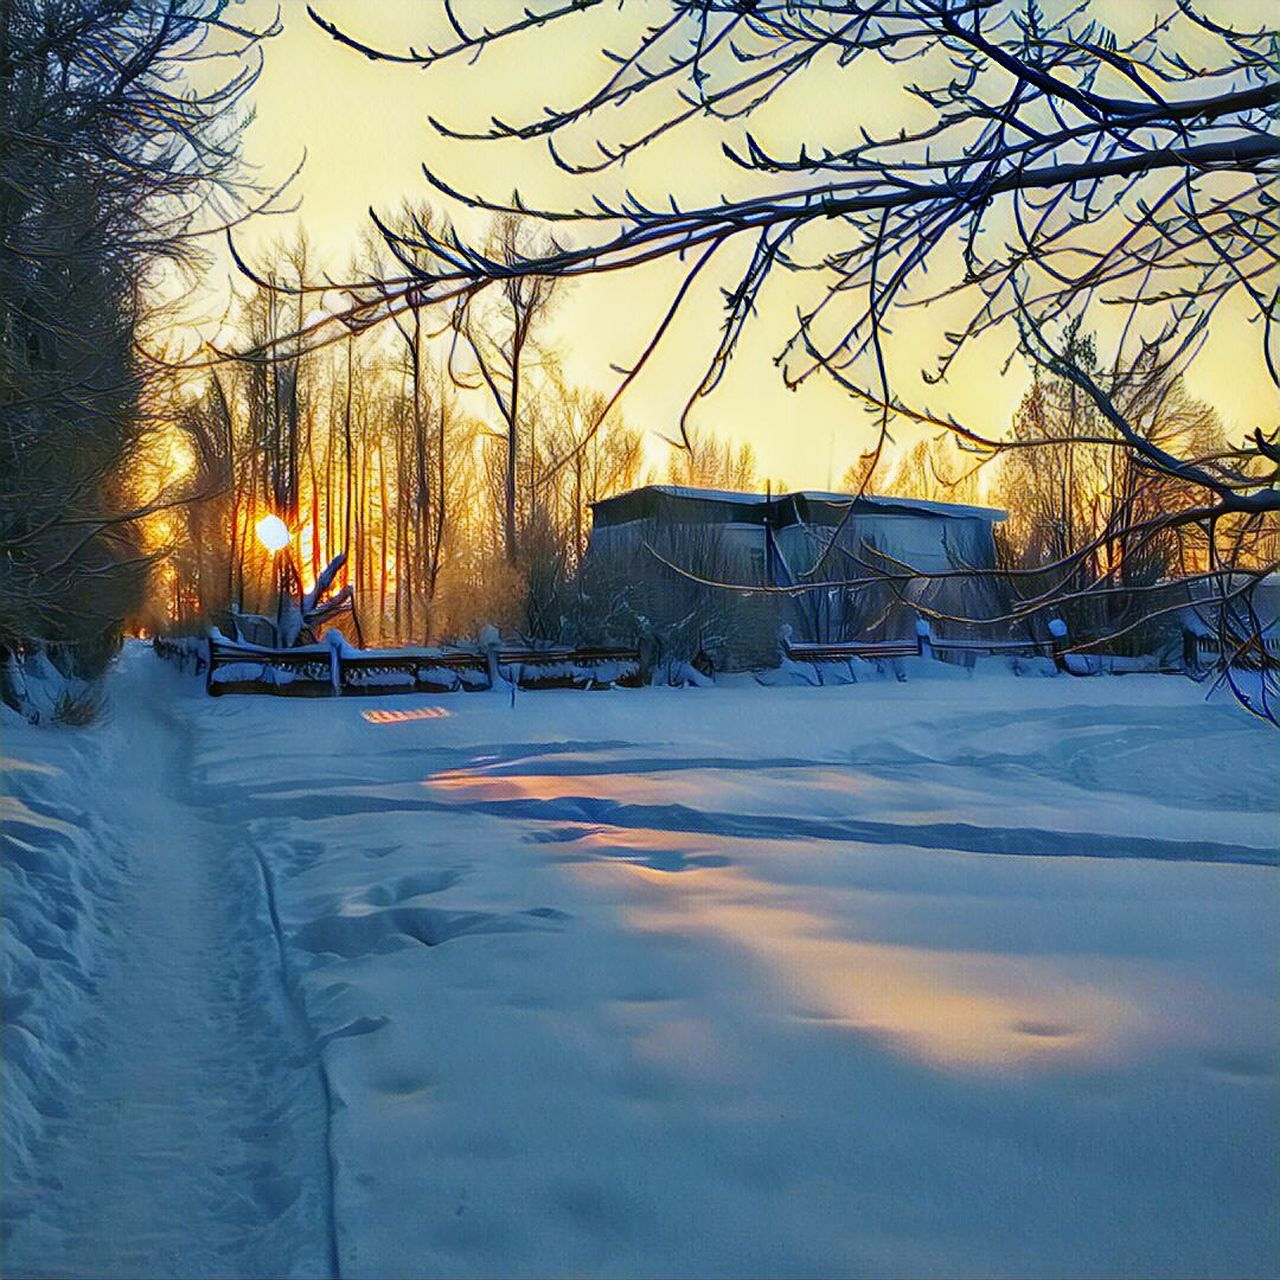 winter, snow, cold temperature, tree, bare tree, weather, cold, nature, sunset, frozen, car, land vehicle, outdoors, transportation, branch, beauty in nature, tranquility, no people, illuminated, scenics, road, sky, snowdrift, day